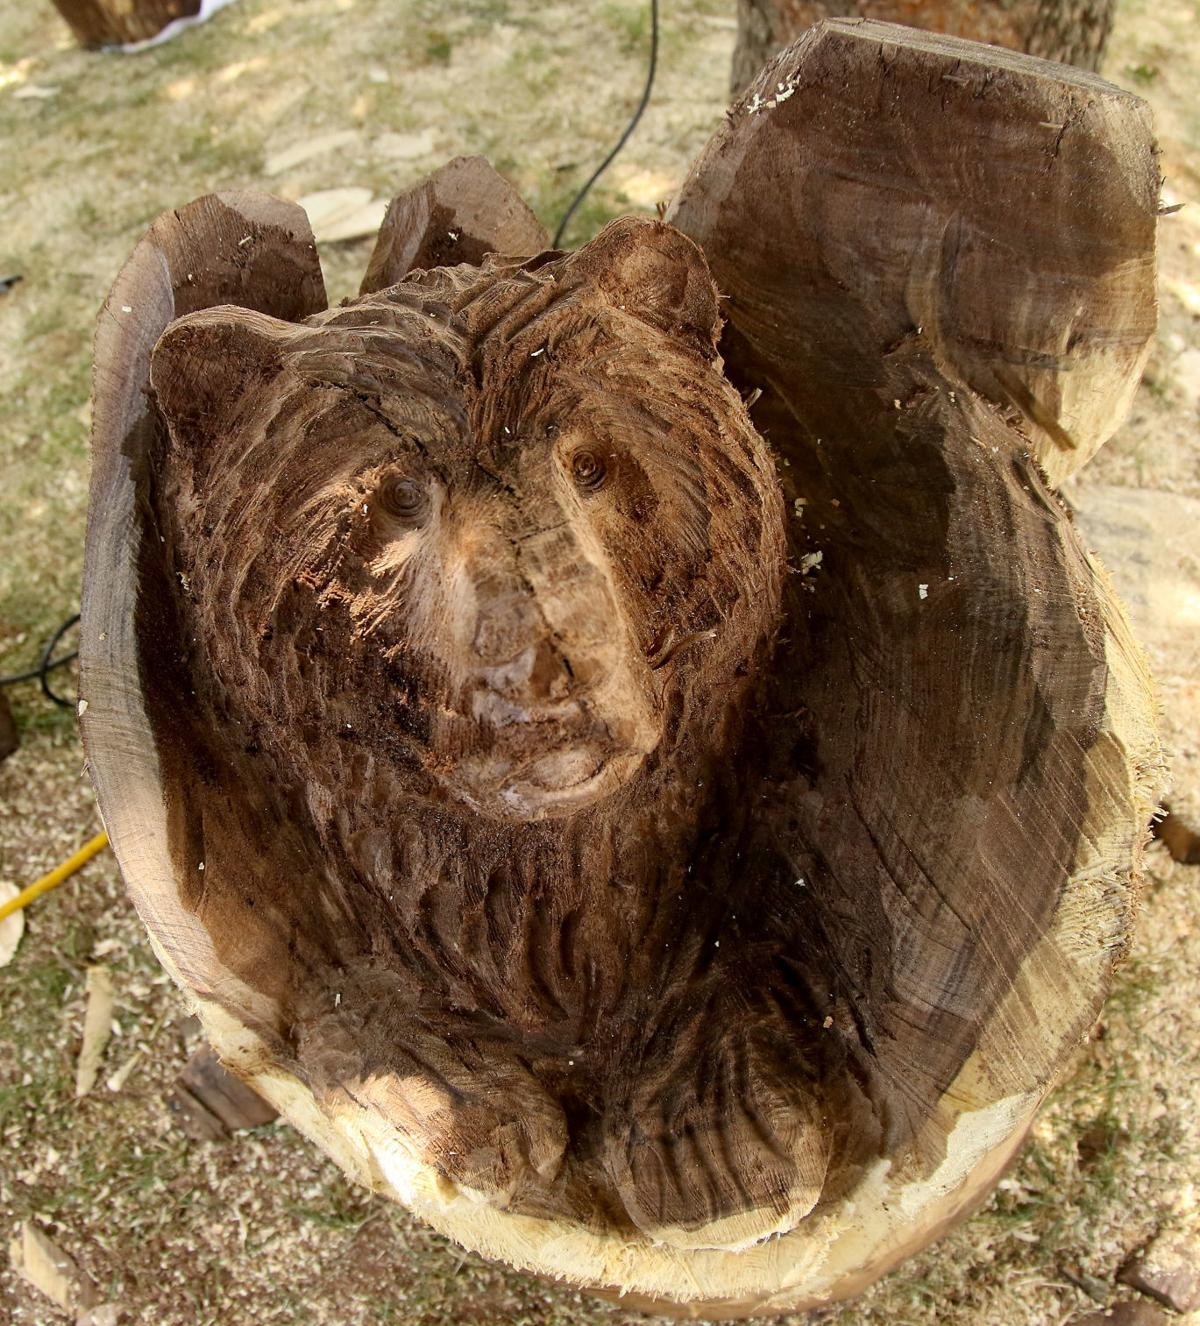 Visiting chainsaw artist carves dead ash trees into monumental